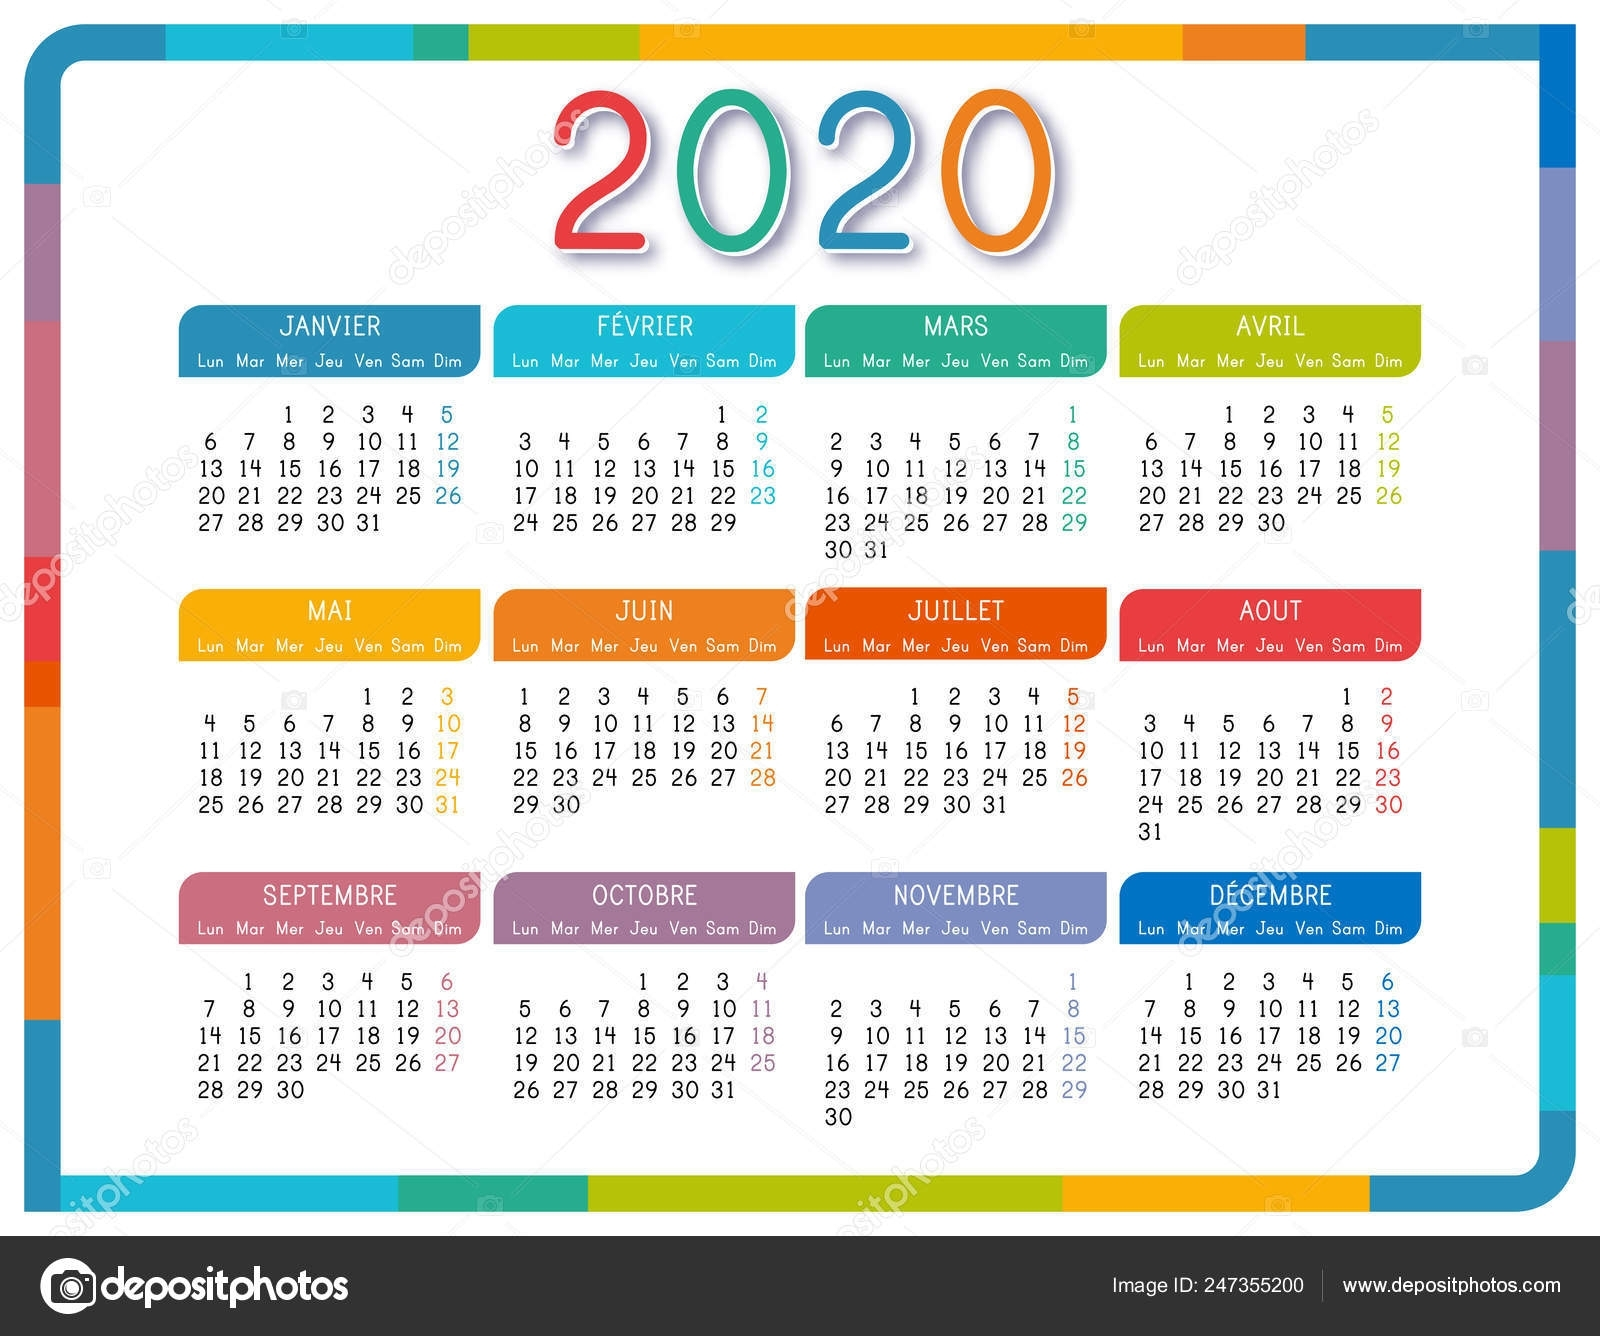 Calendar 2020 French Language White Background Colorful